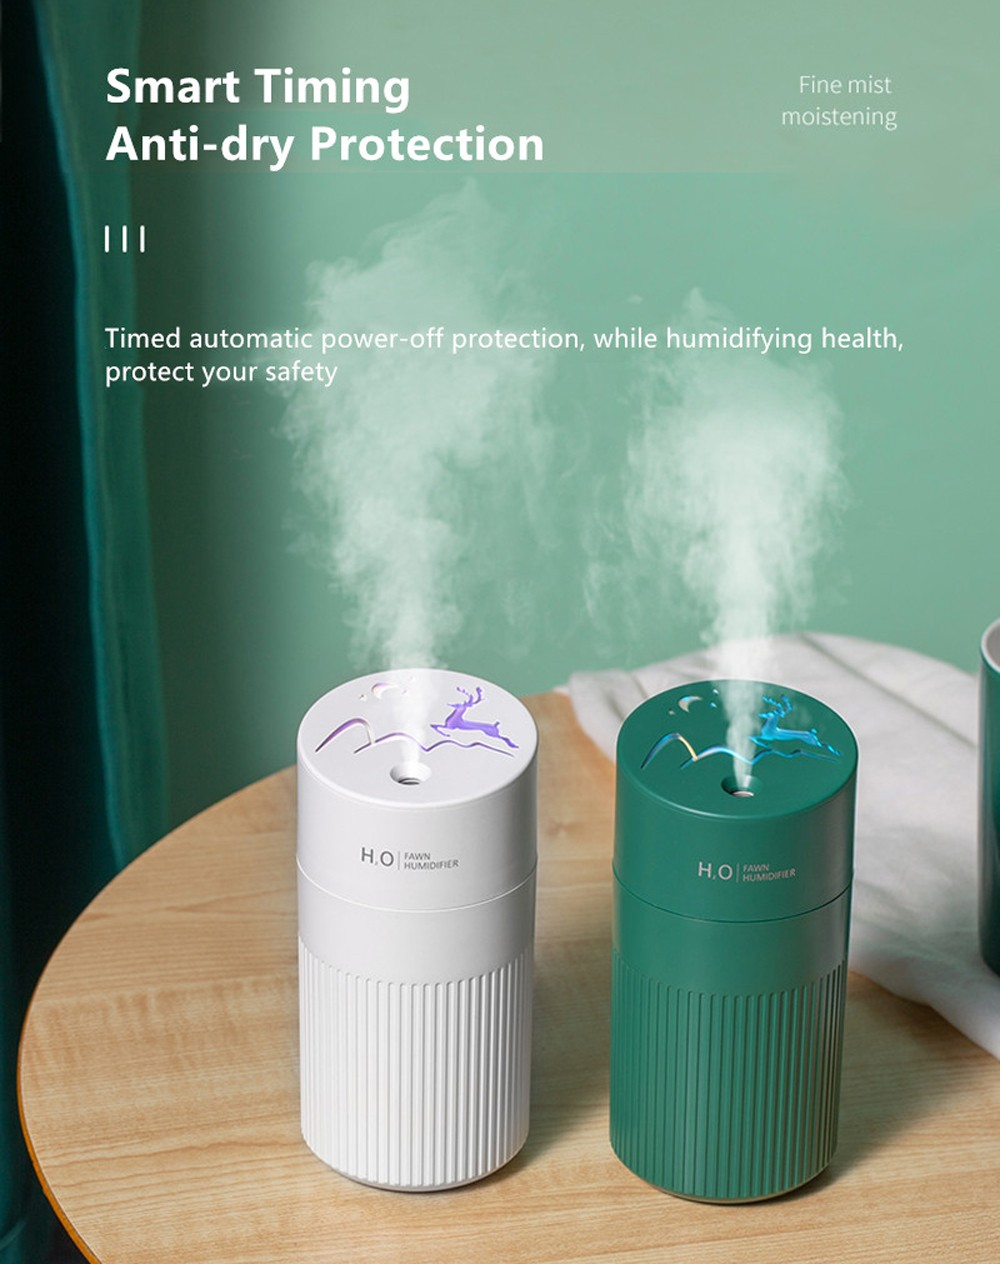 DLS-FA66 Fawn Humidifier Two-speed Spray USB Charging Long Battery Life 420ML - Sea Green